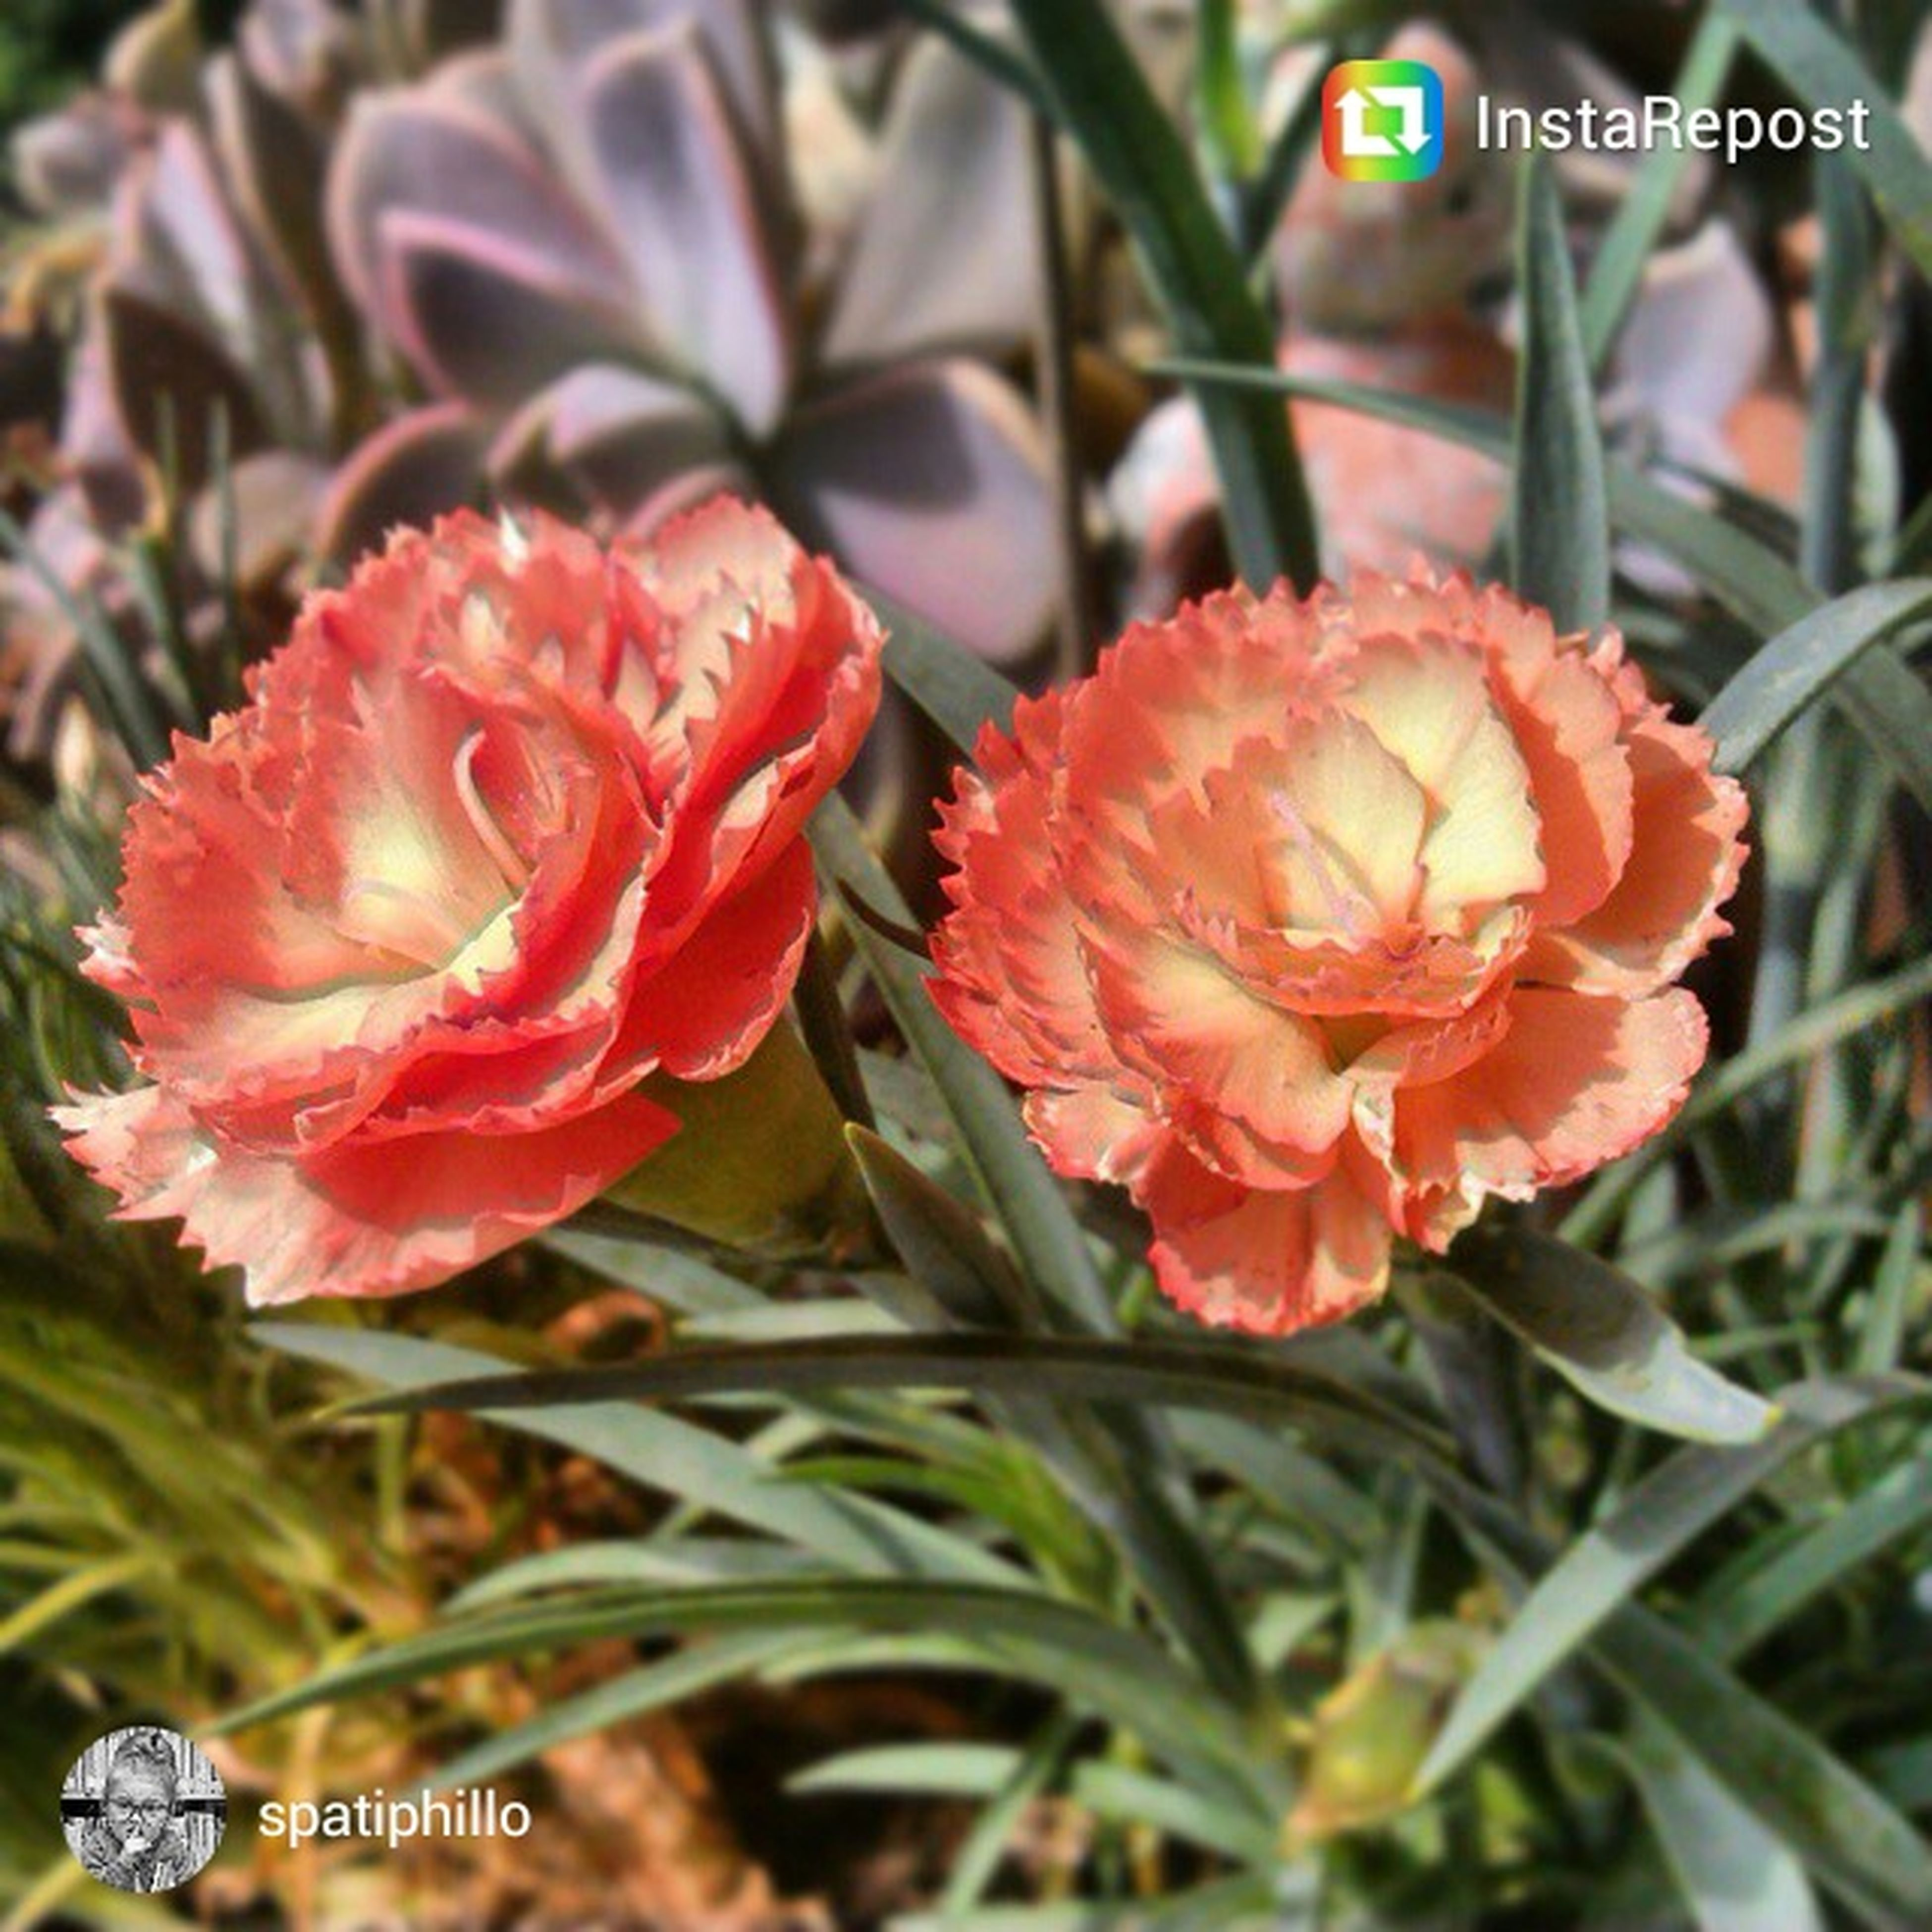 flower, petal, freshness, fragility, flower head, focus on foreground, close-up, growth, red, plant, beauty in nature, blooming, nature, high angle view, in bloom, orange color, day, outdoors, no people, park - man made space